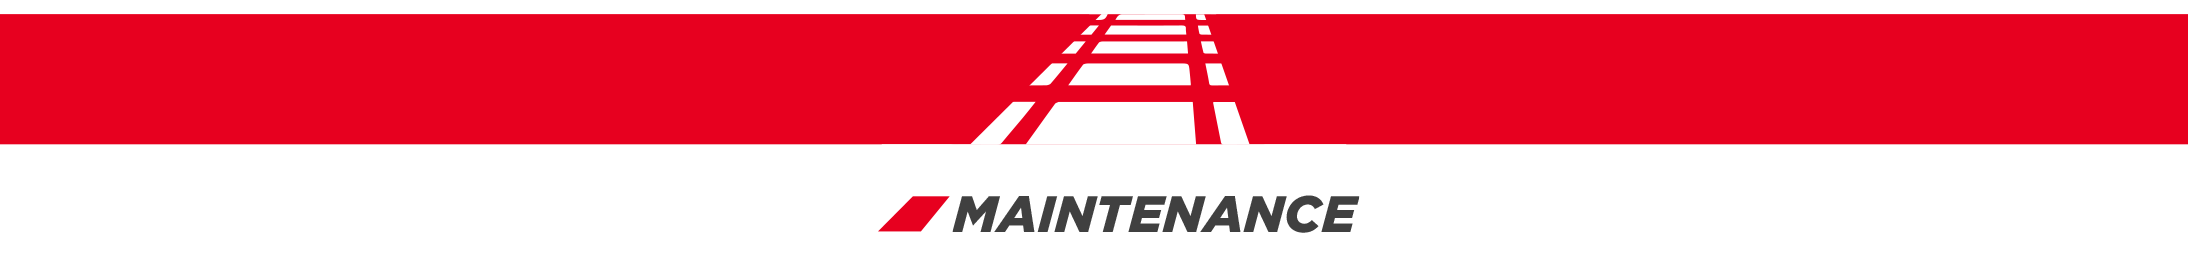 Railway Maintenance Services Queensland